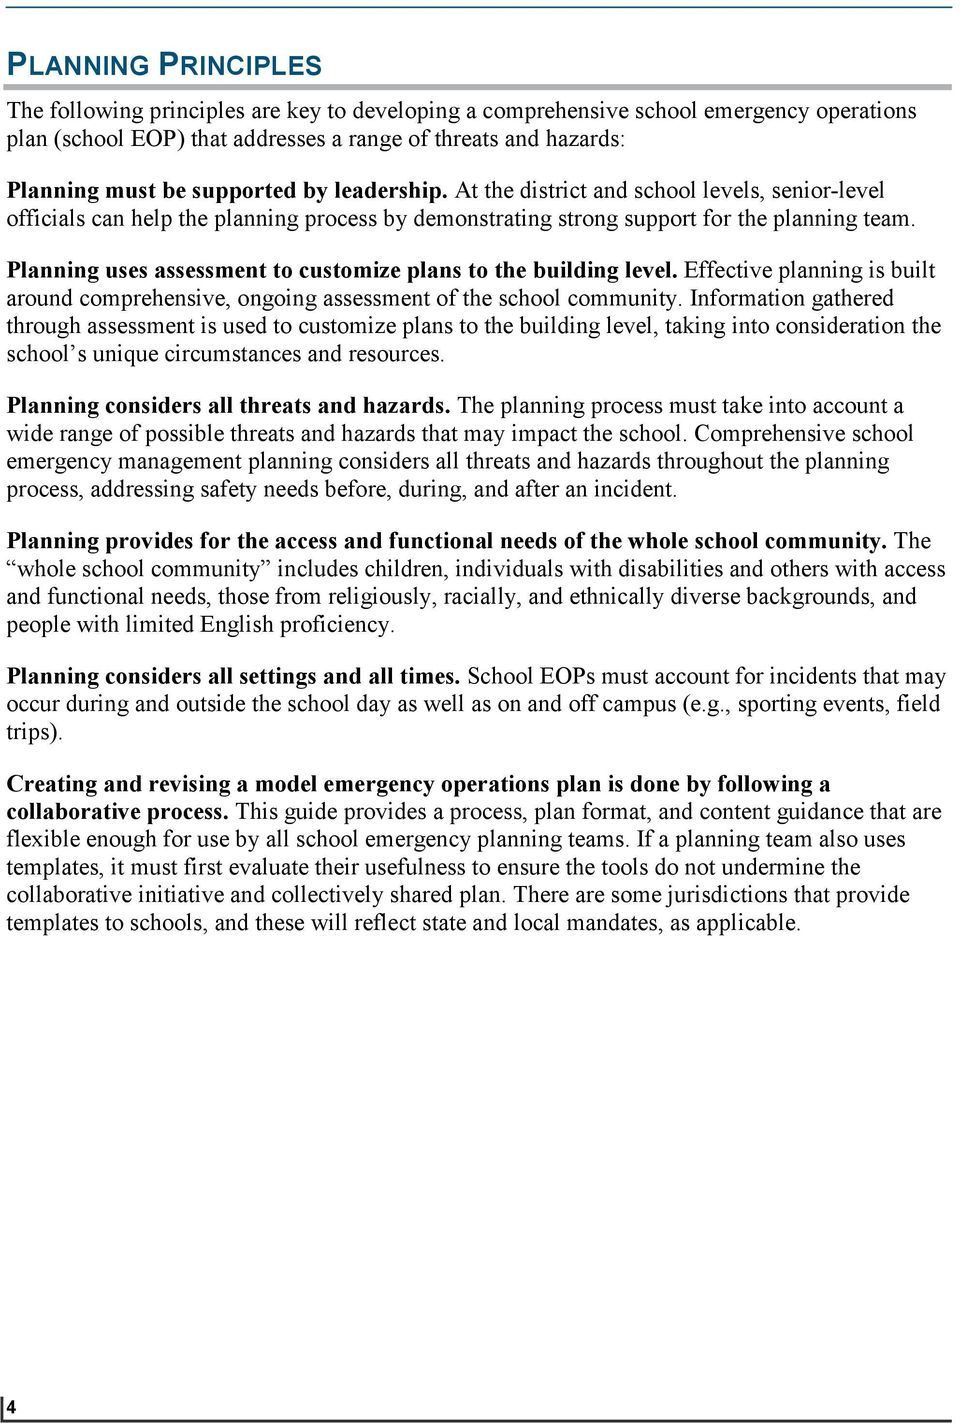 Planning uses assessment to customize plans to the building level. Effective planning is built around comprehensive, ongoing assessment of the school community.